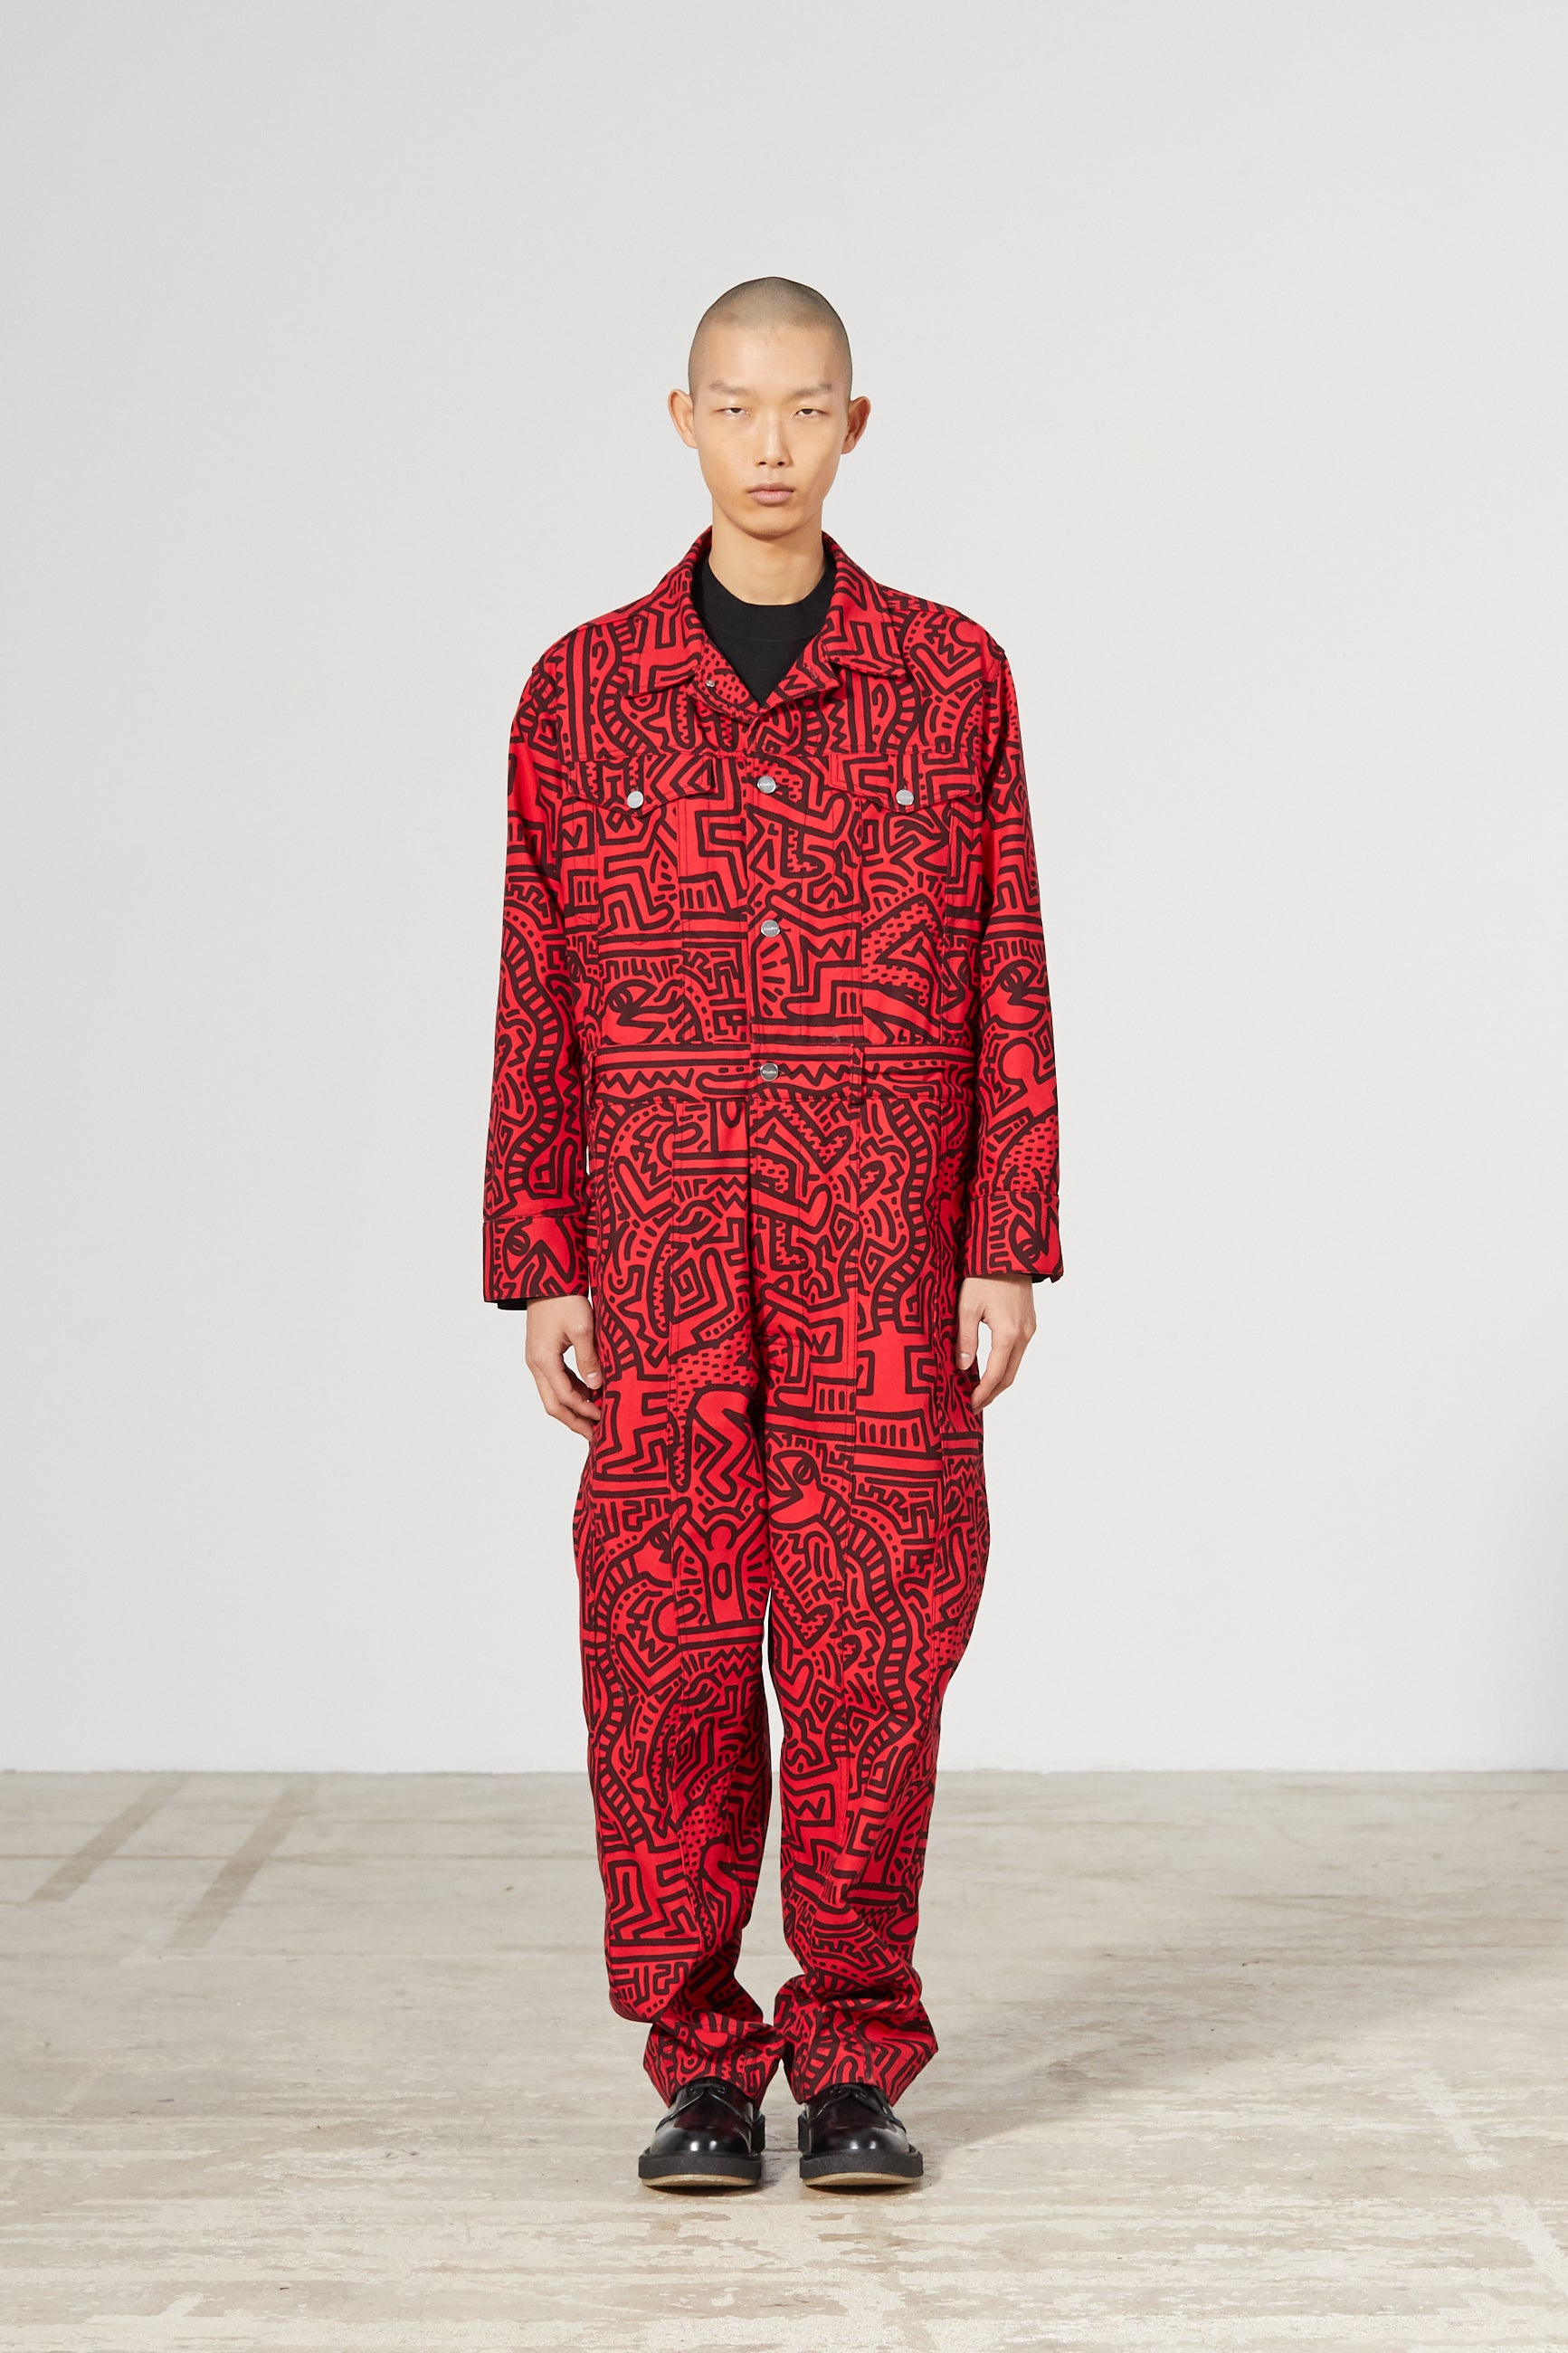 CANYON OVERALL KEITH HARING